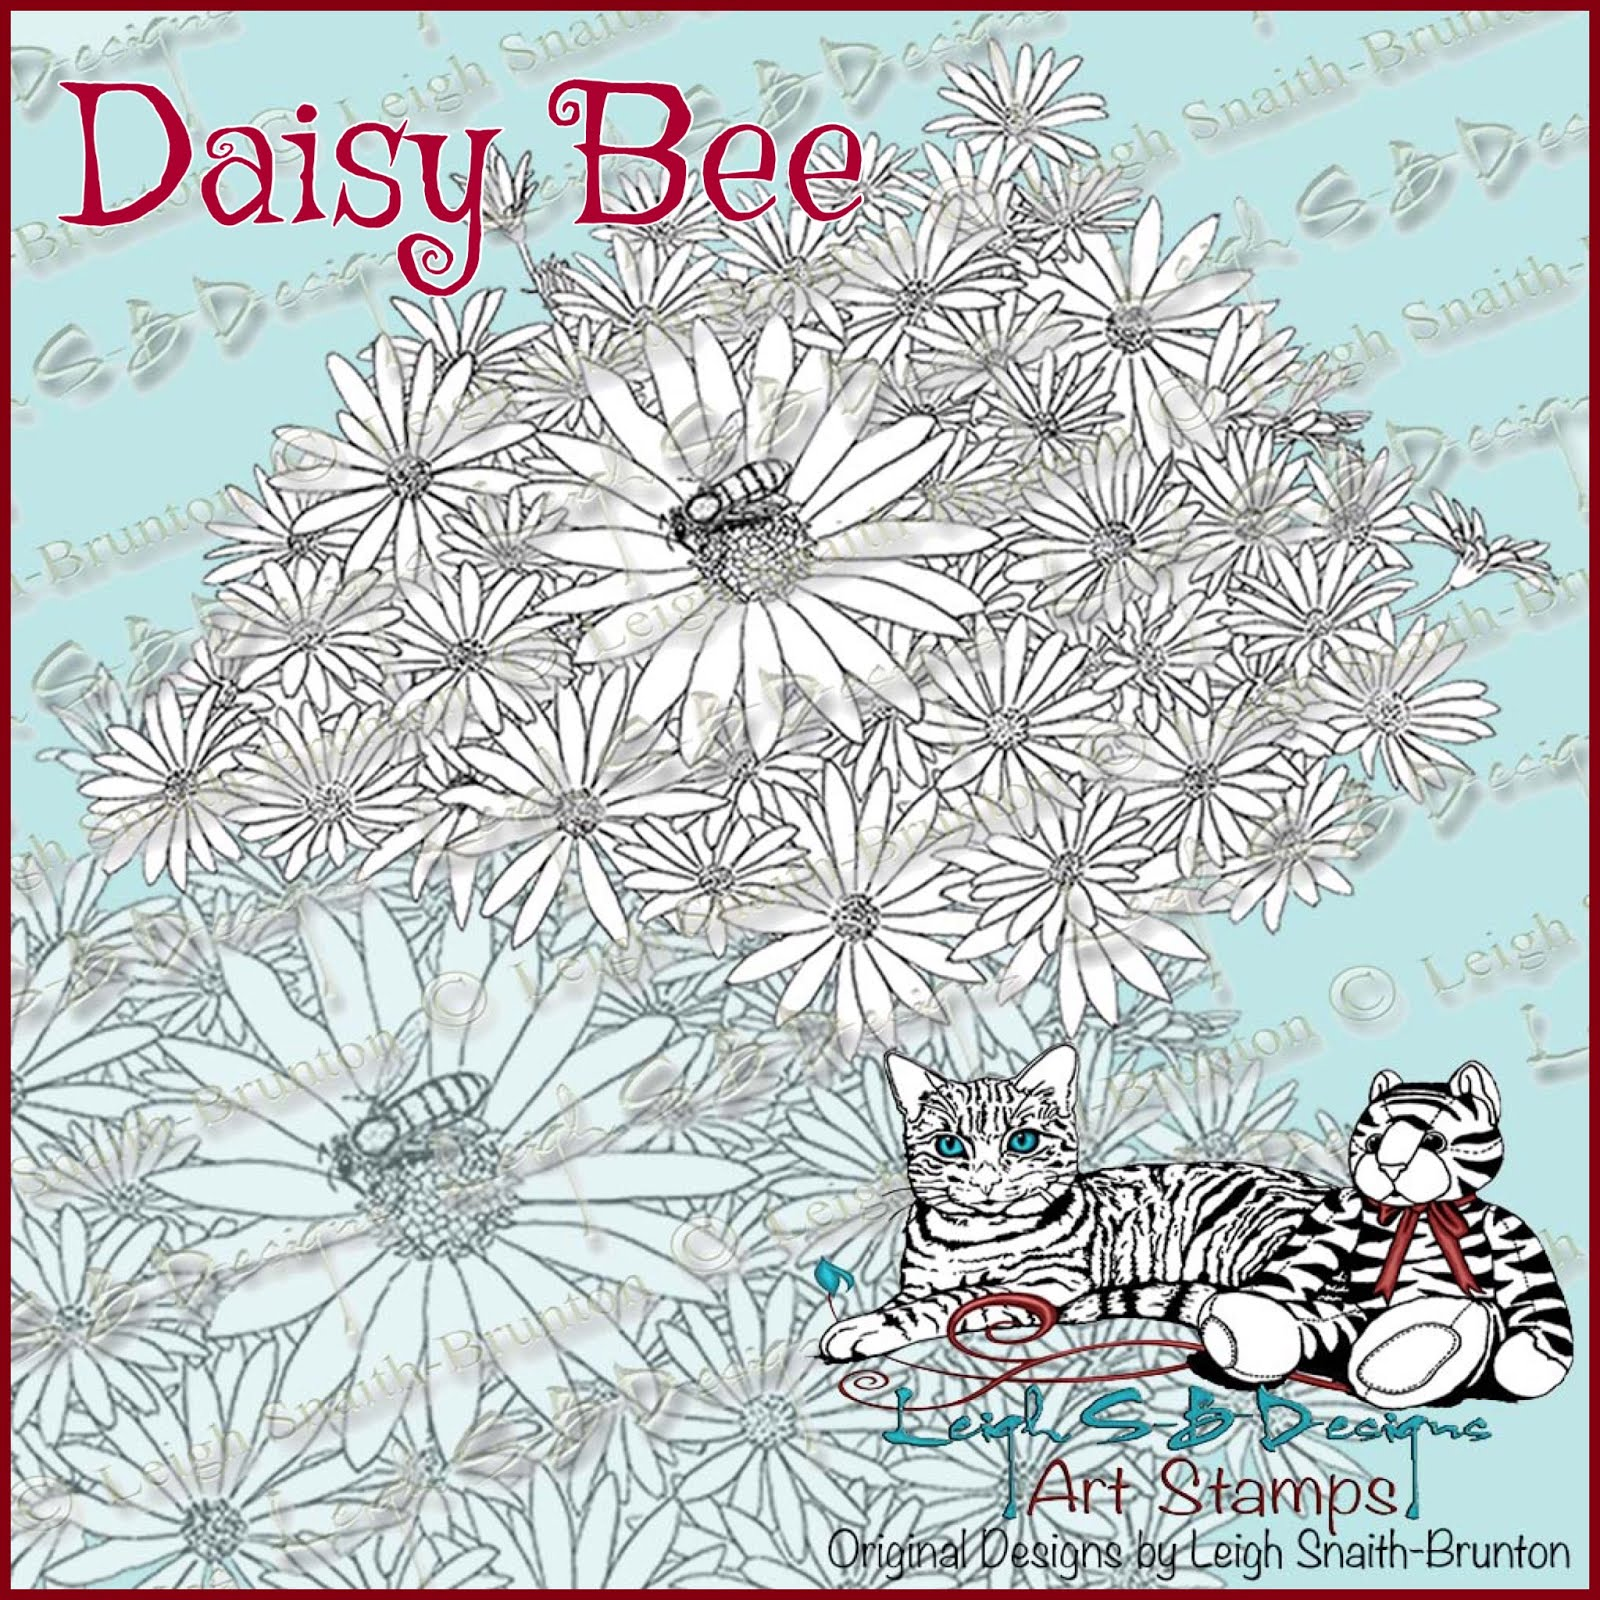 NEW RELEASE - DAISY BEE